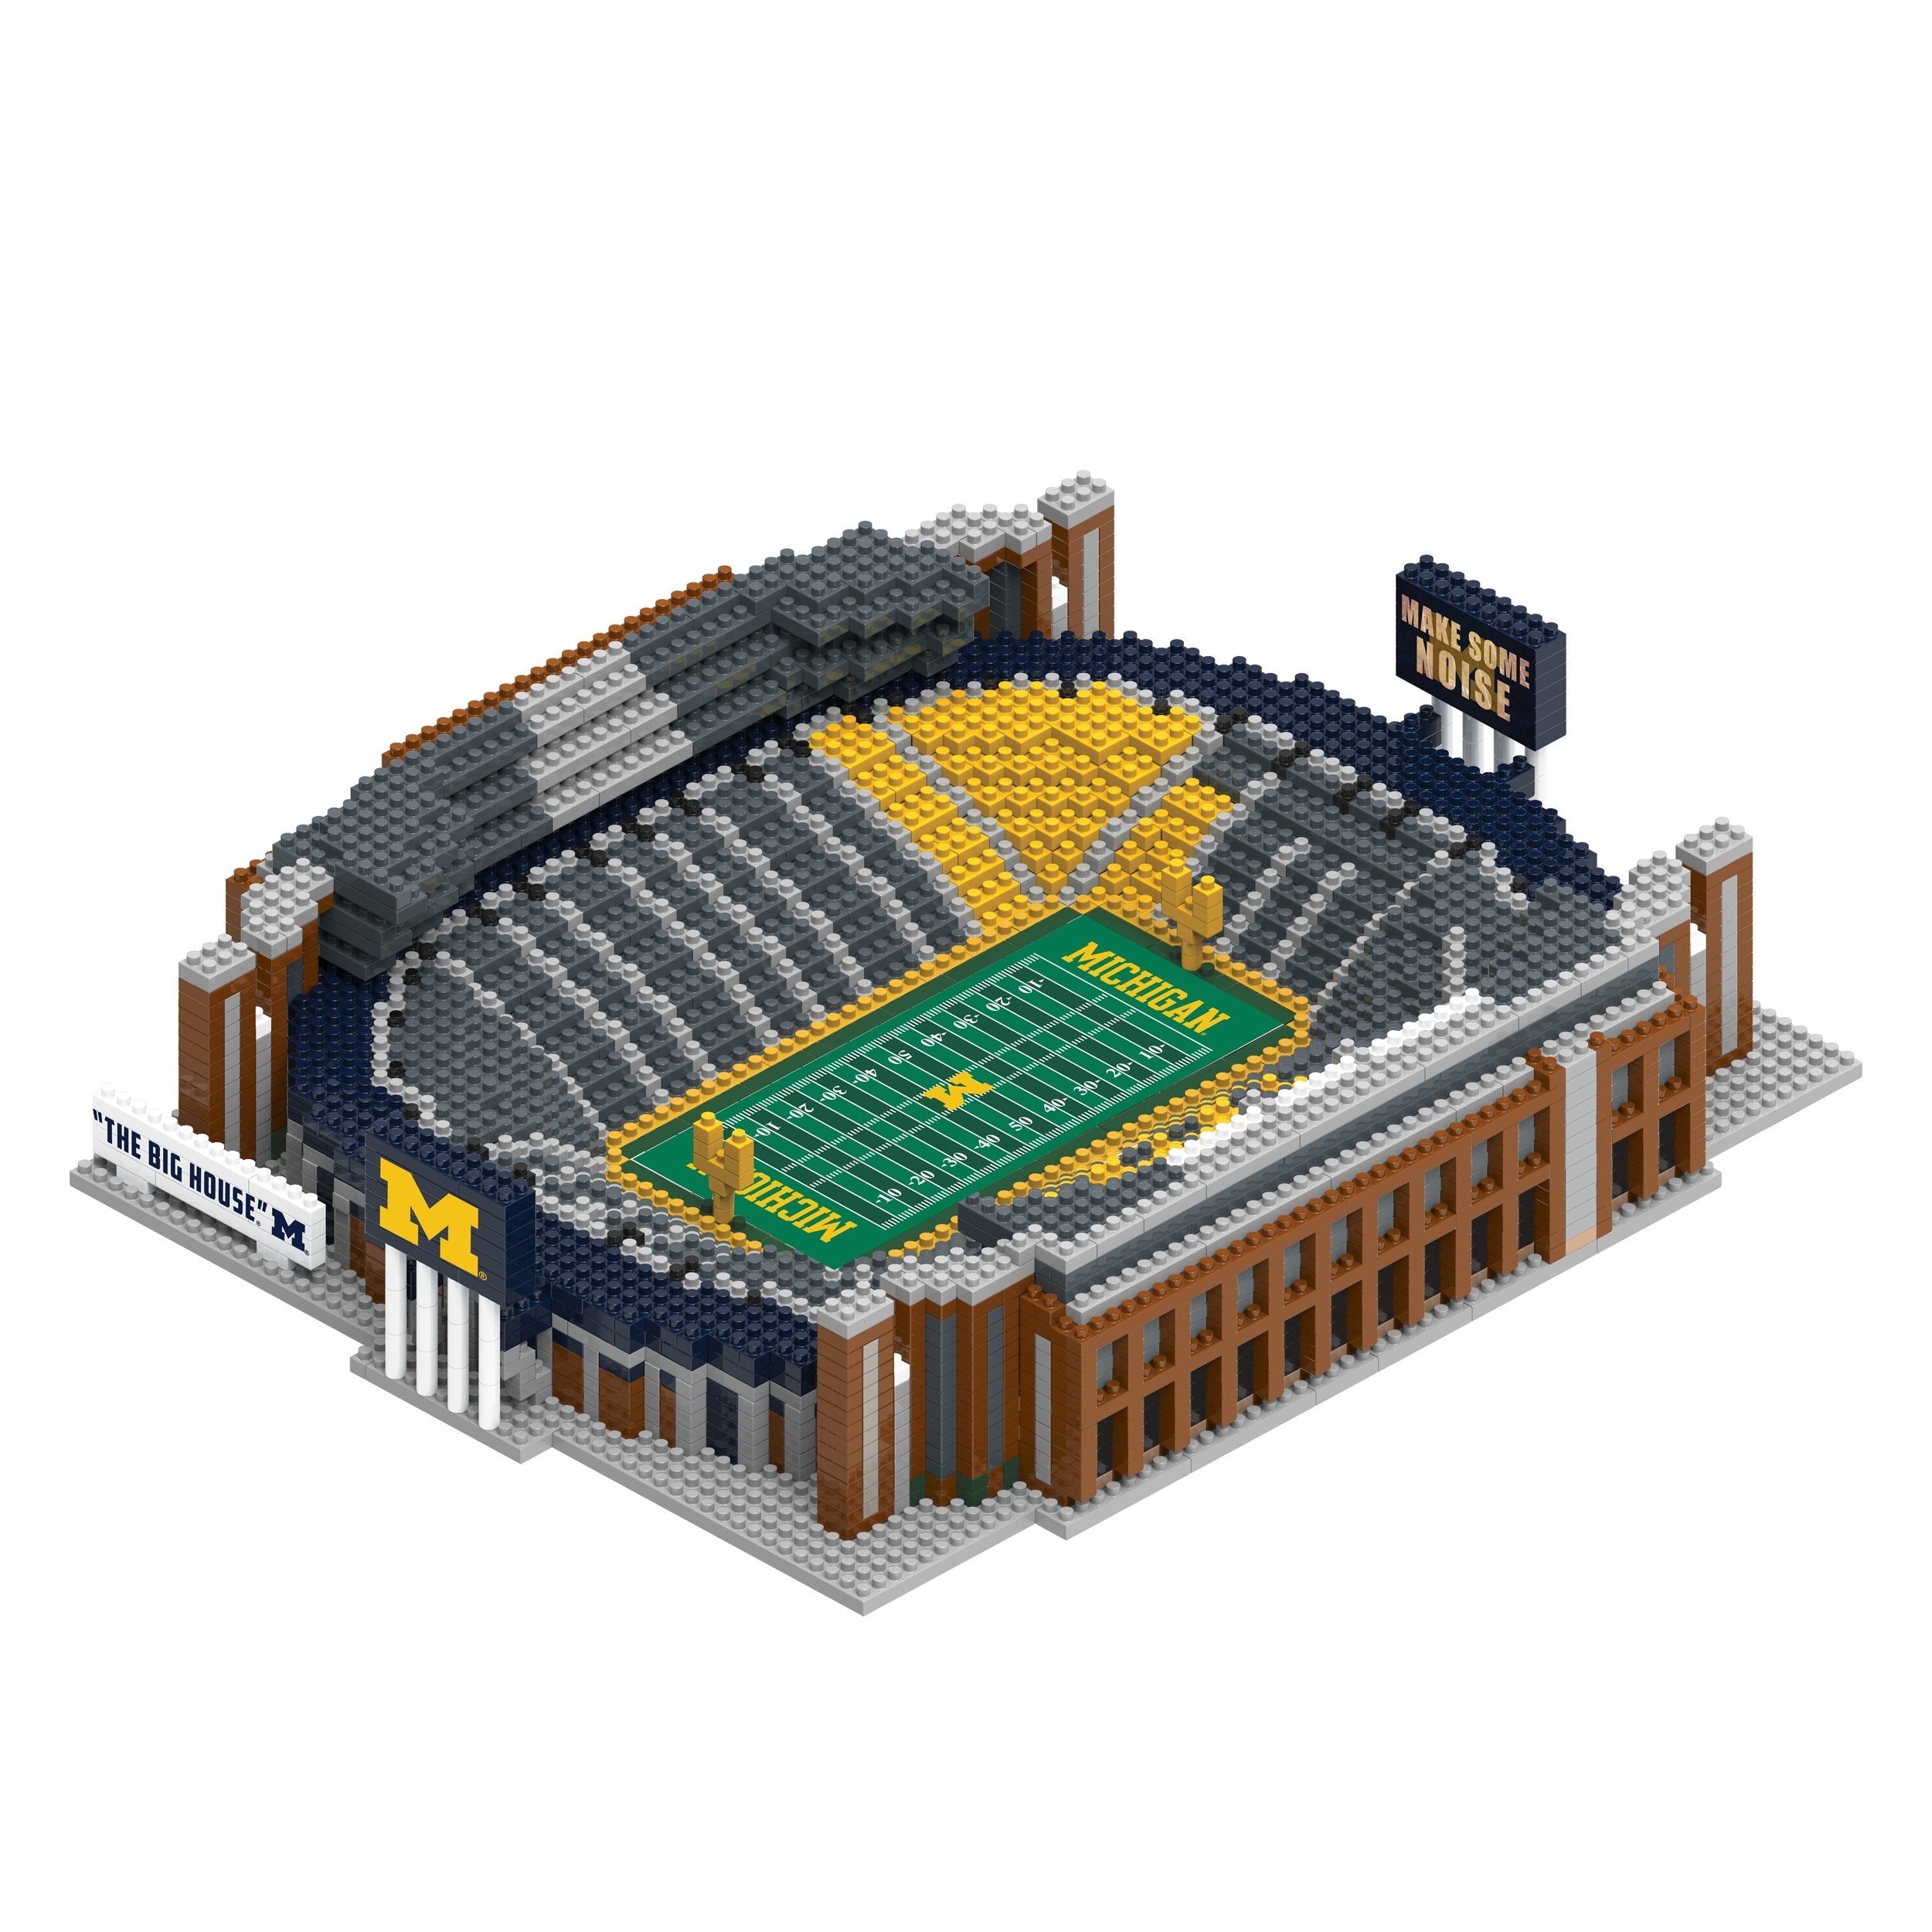 michigan wolverines ncaa 3d brxlz puzzle stadium blocks set michigan wolverines ncaa 3d brxlz puzzle stadium blocks set